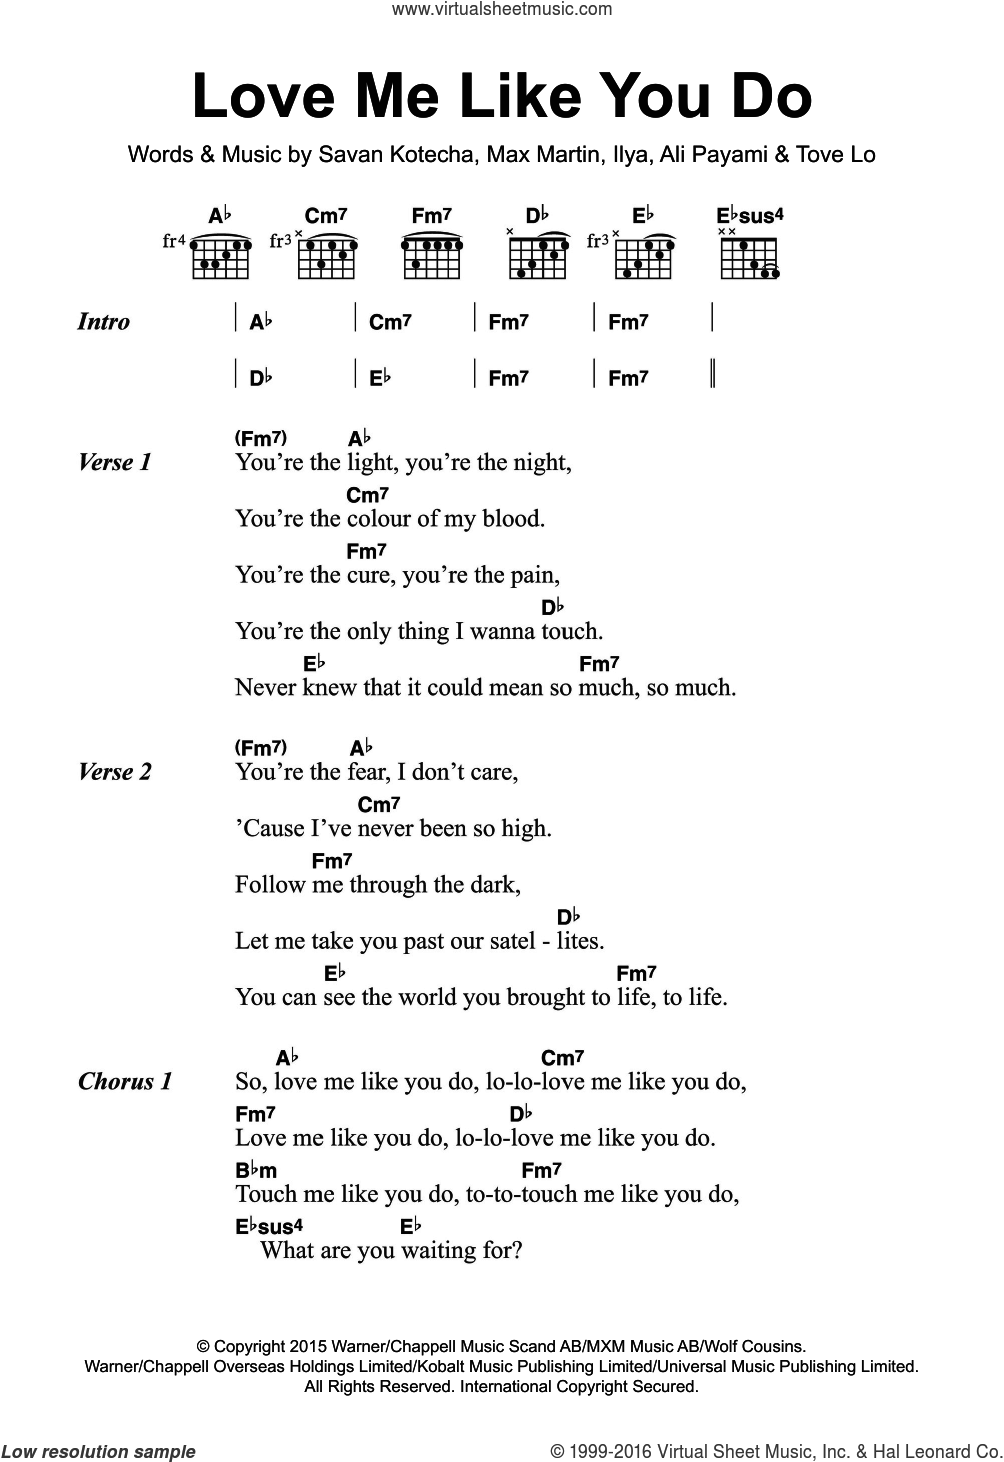 Love Me Like You Do sheet music for guitar (chords) by Ellie Goulding, Ali Payami, Ilya, Max Martin, Savan Kotecha and Tove Lo, intermediate skill level